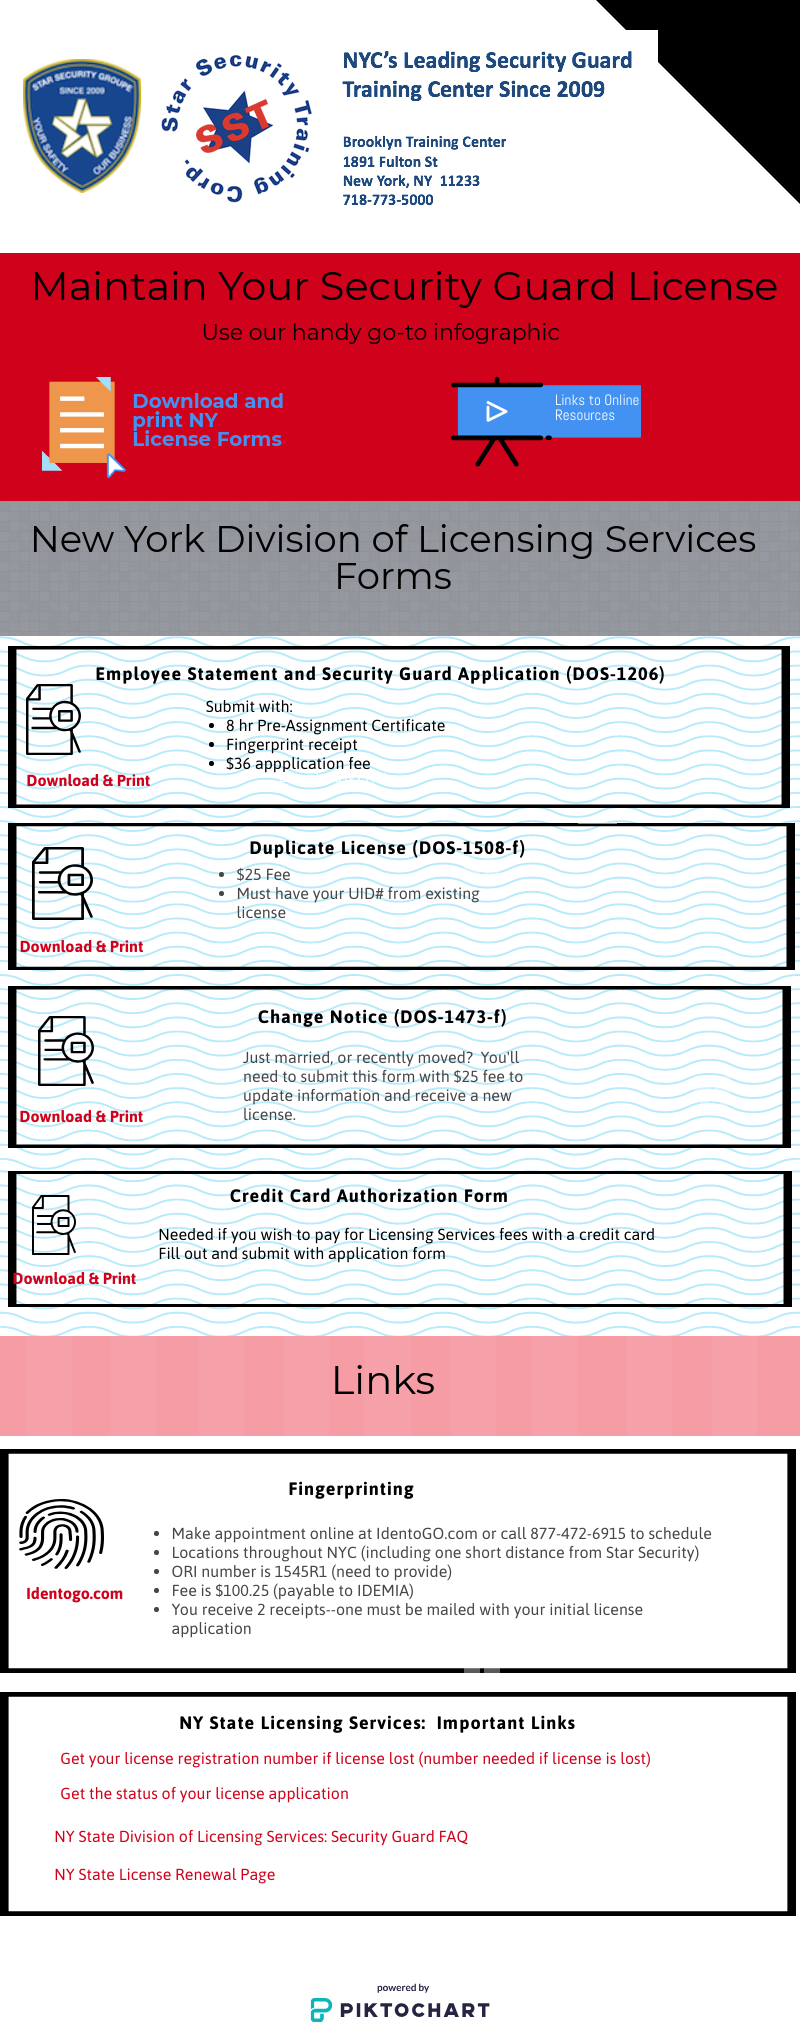 new york state security guard license forms infographic